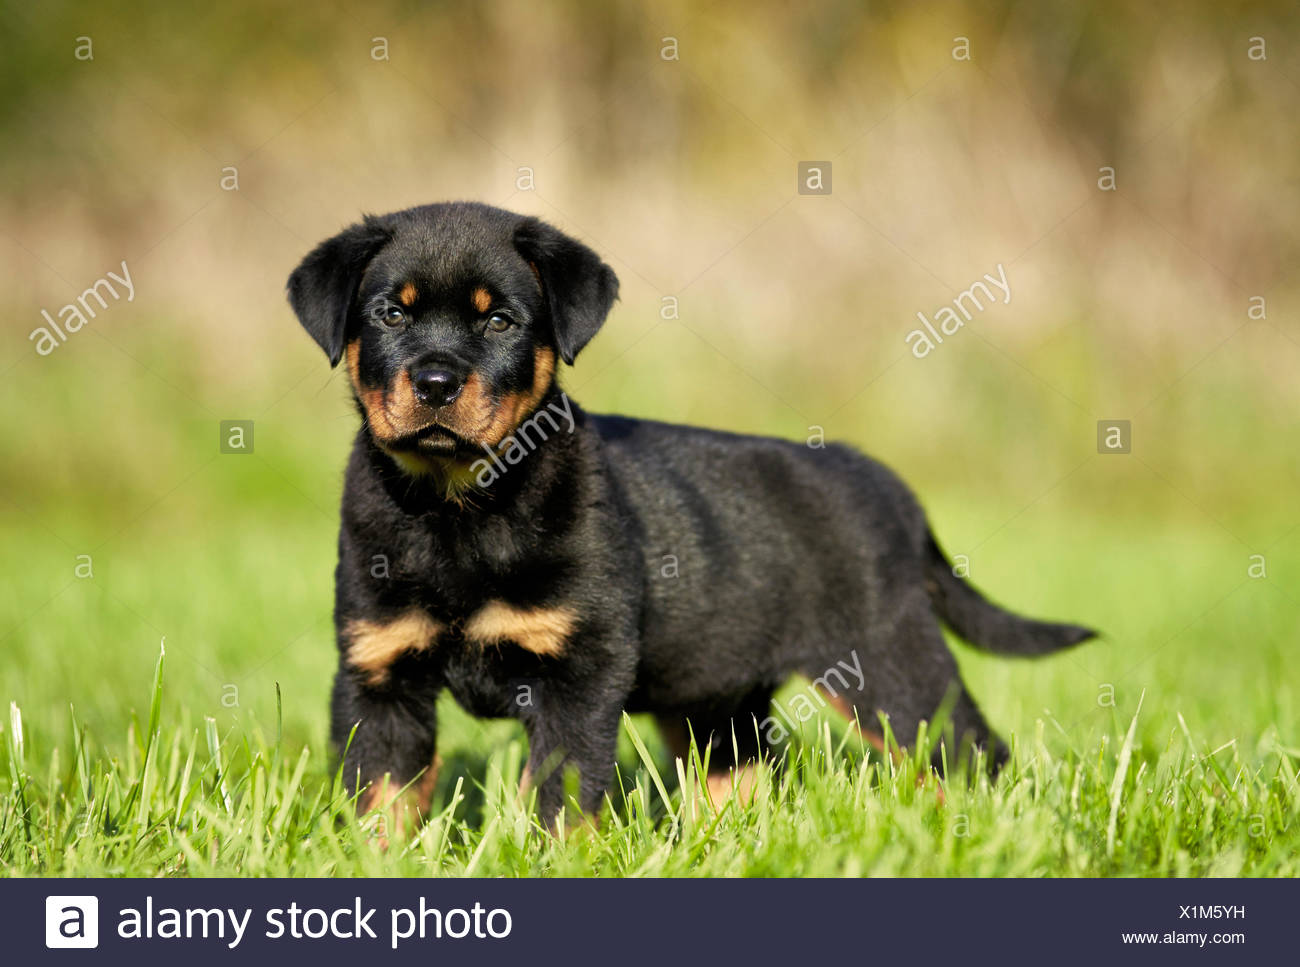 Rottweiler Puppy Standing Lawn Germany Stock Photo 276424277 Alamy